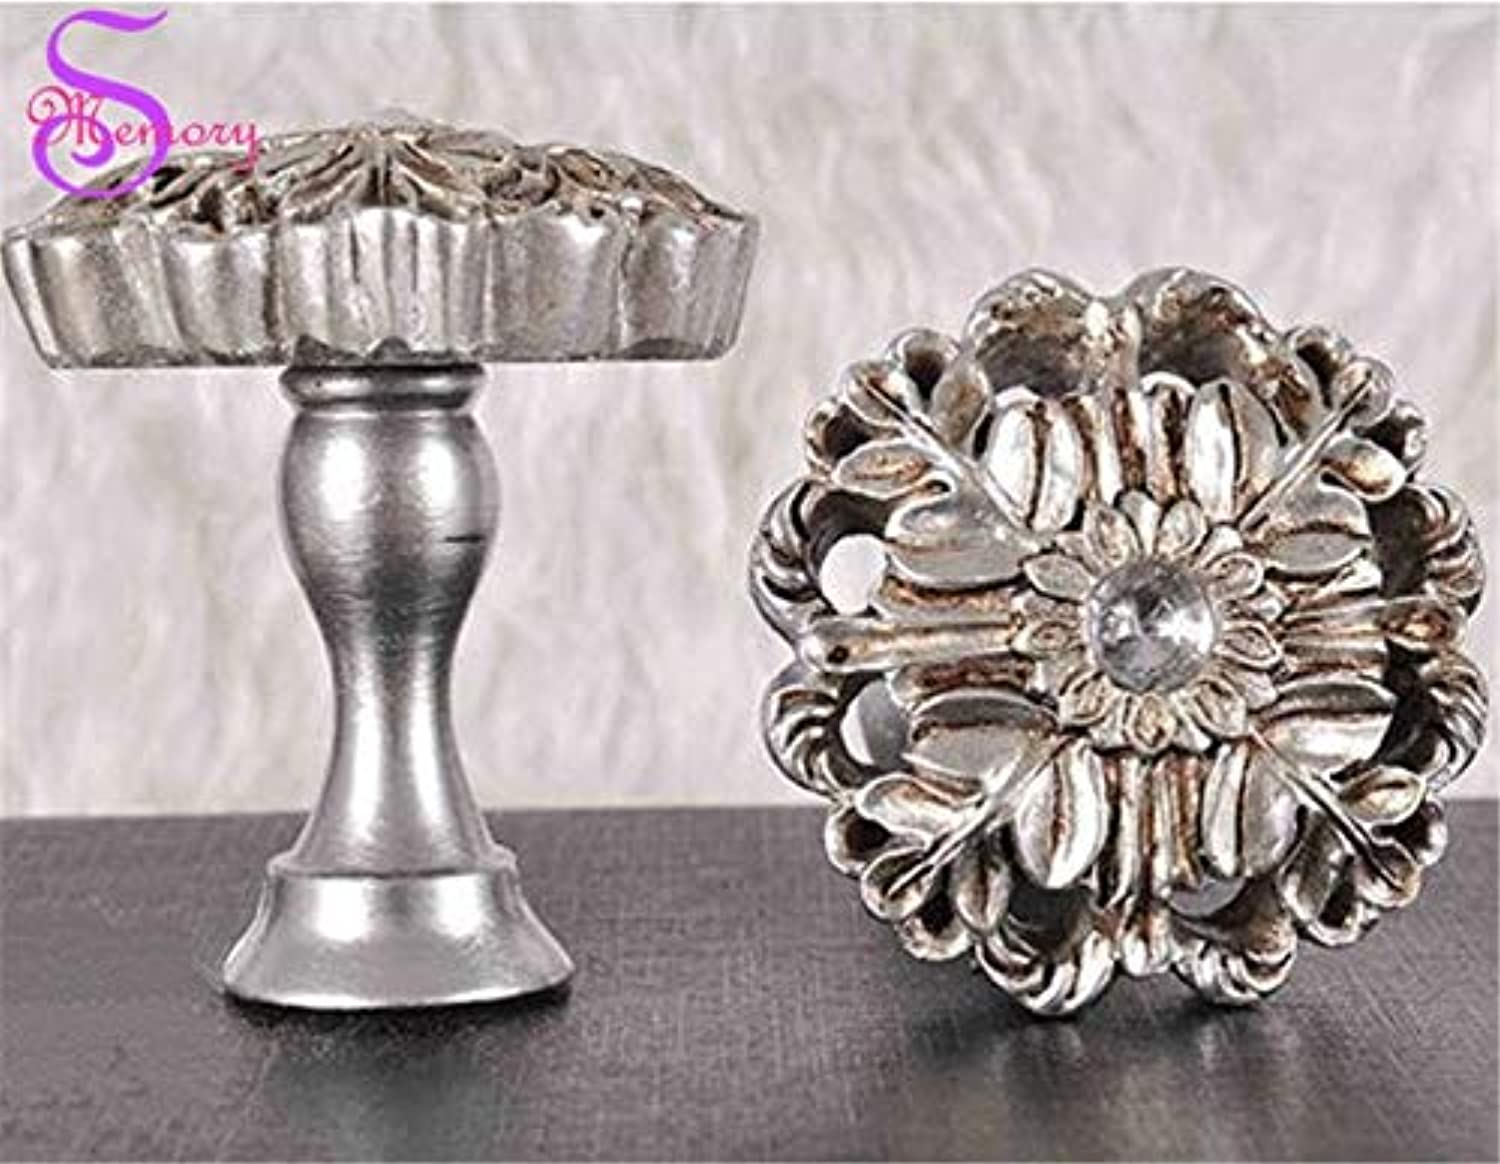 Isali Luxury Flower Curtain Tie Back Holders Vintage Tieback Wall Hat Bag Clothes Hooks Hanger Home Decor  (color  Silver)